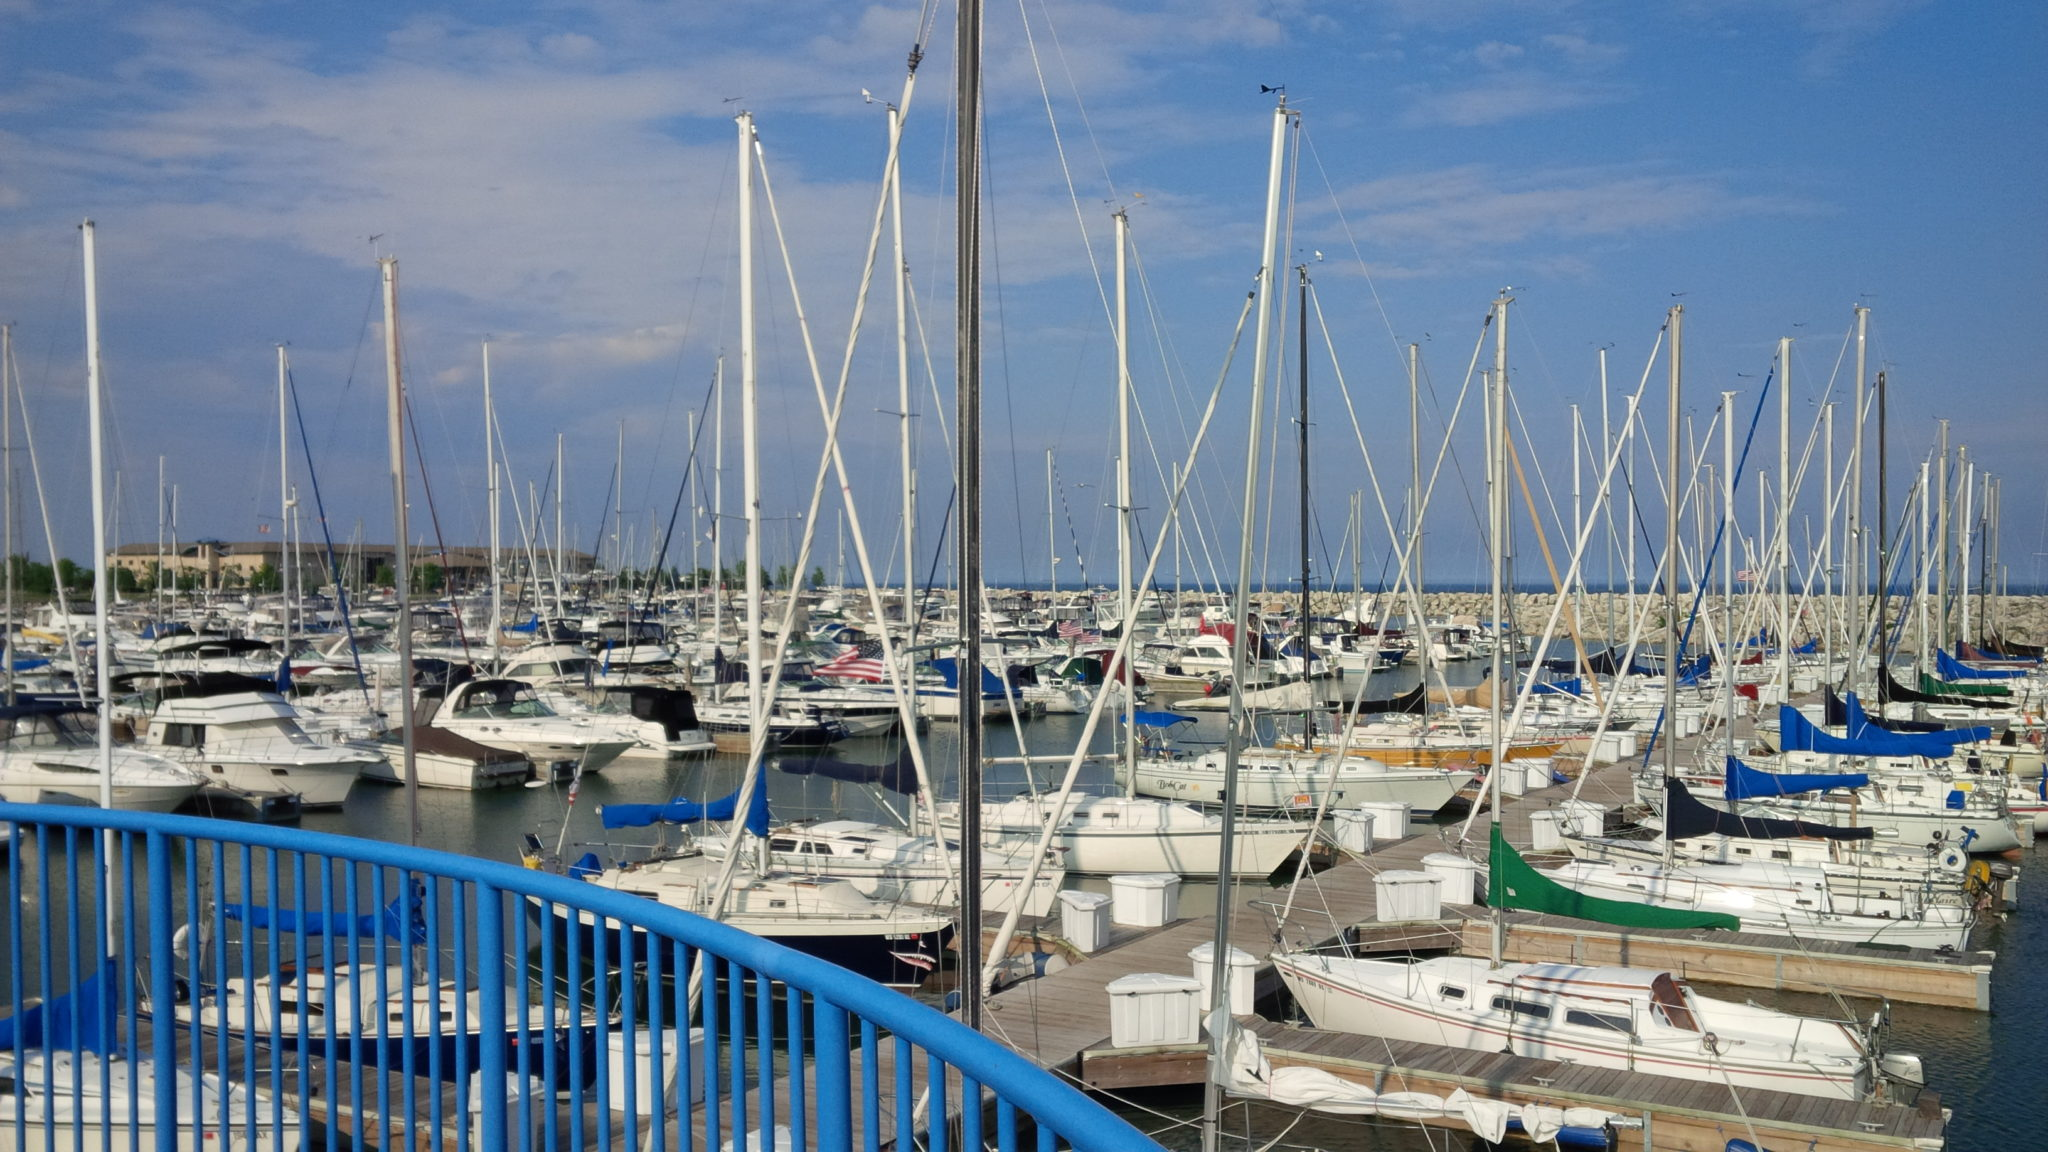 Kenosha Community Sailing Center